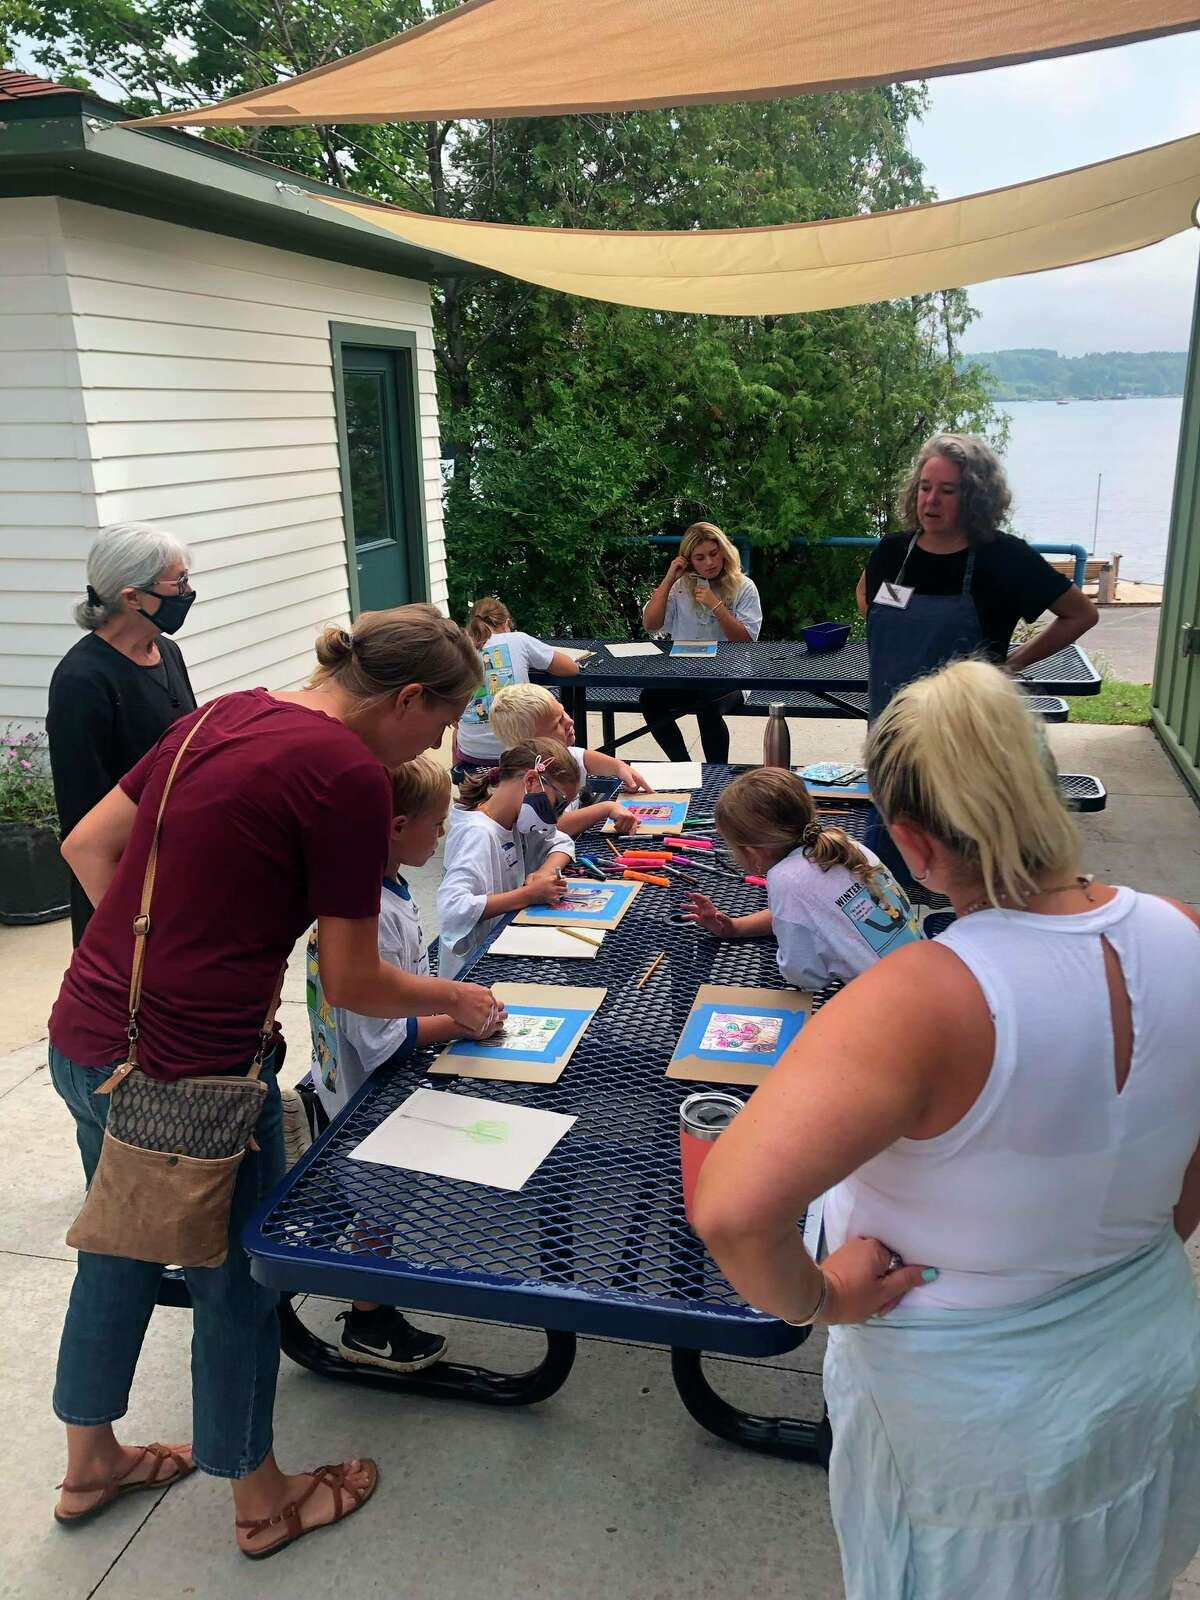 The Oliver Art Center opened a new outdoor classroom to better serve its guests. (Courtesy Photo)